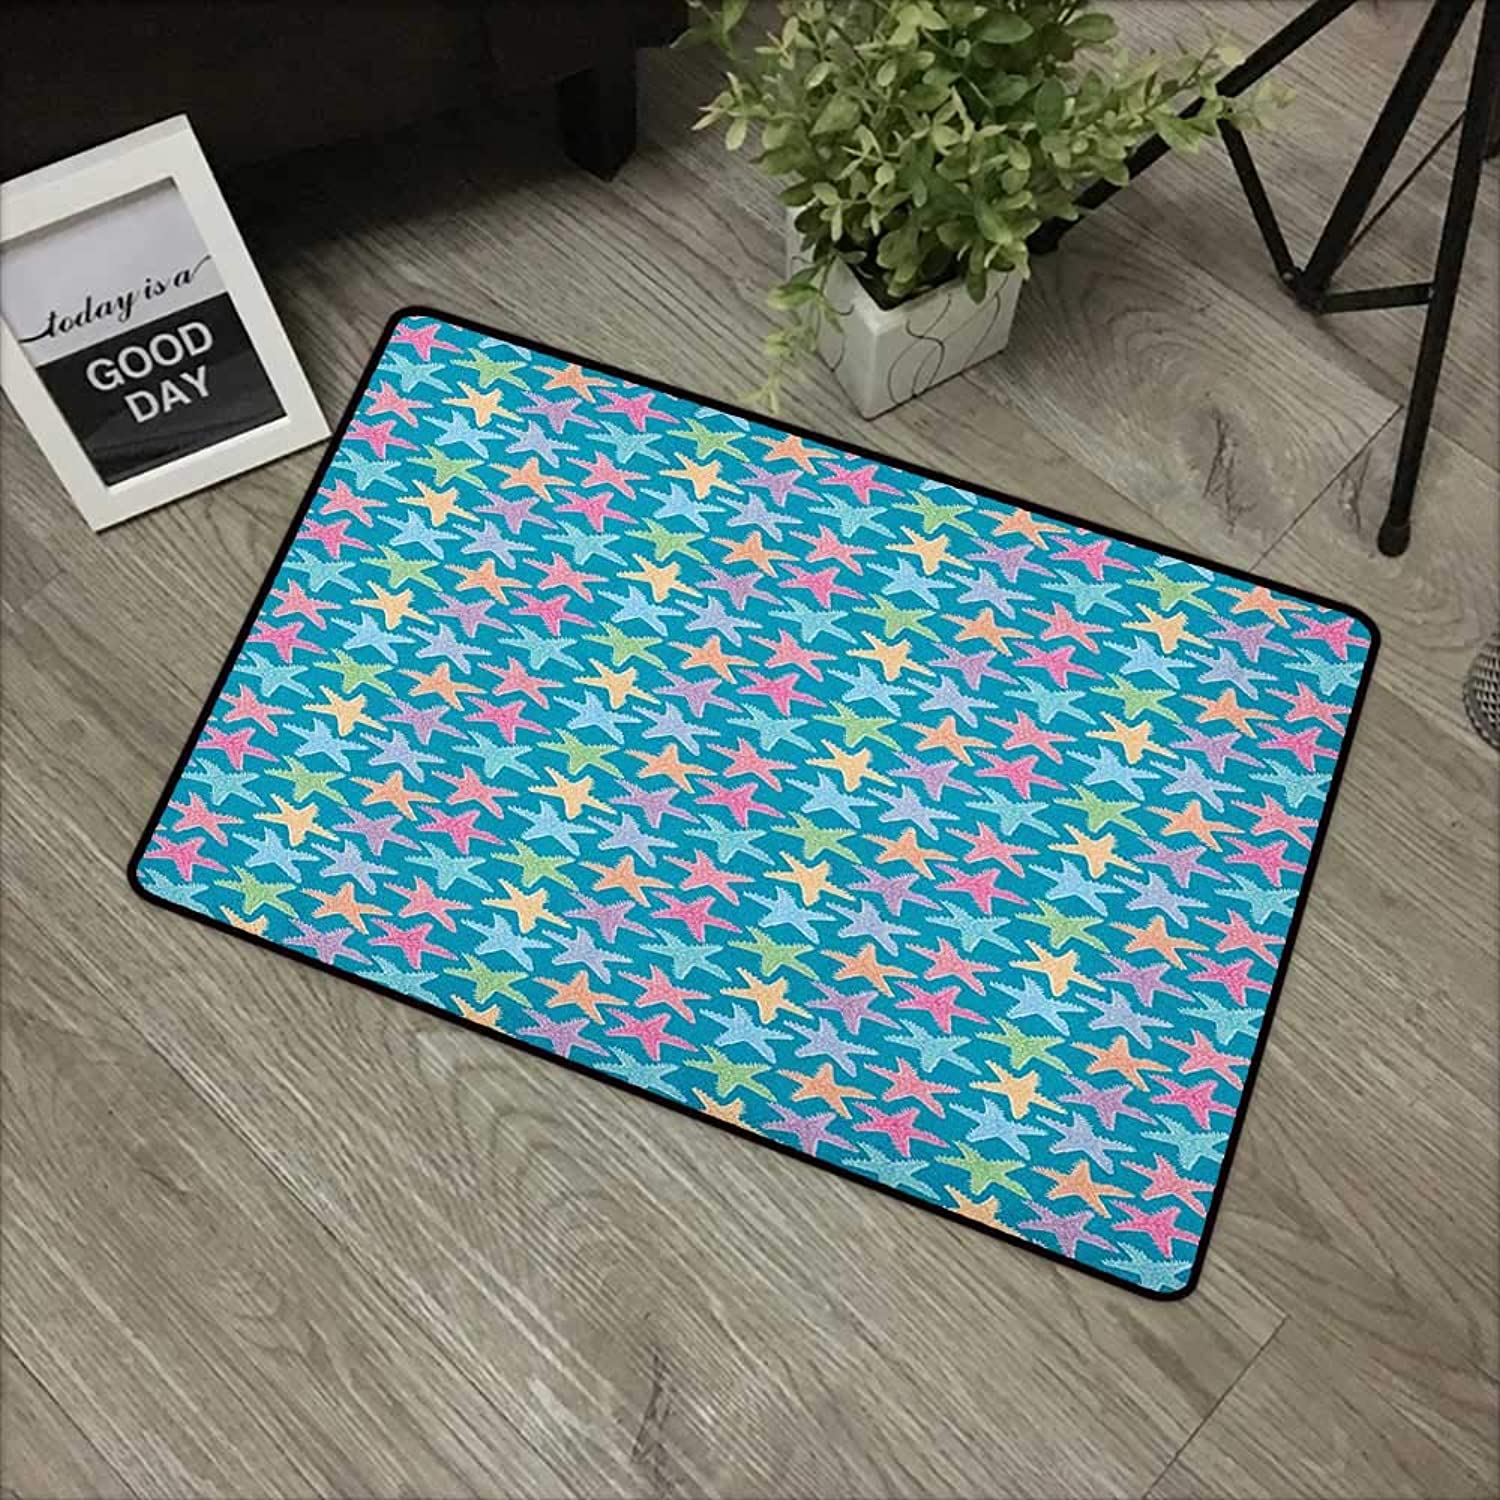 Door mat W35 x L59 INCH Starfish,Hand Drawn Sketch Illustration of Exotic Seastars Nautical Animal Arrangement, Multicolor Natural dye Printing to Predect Your Baby's Skin Non-Slip Door Mat Carpet